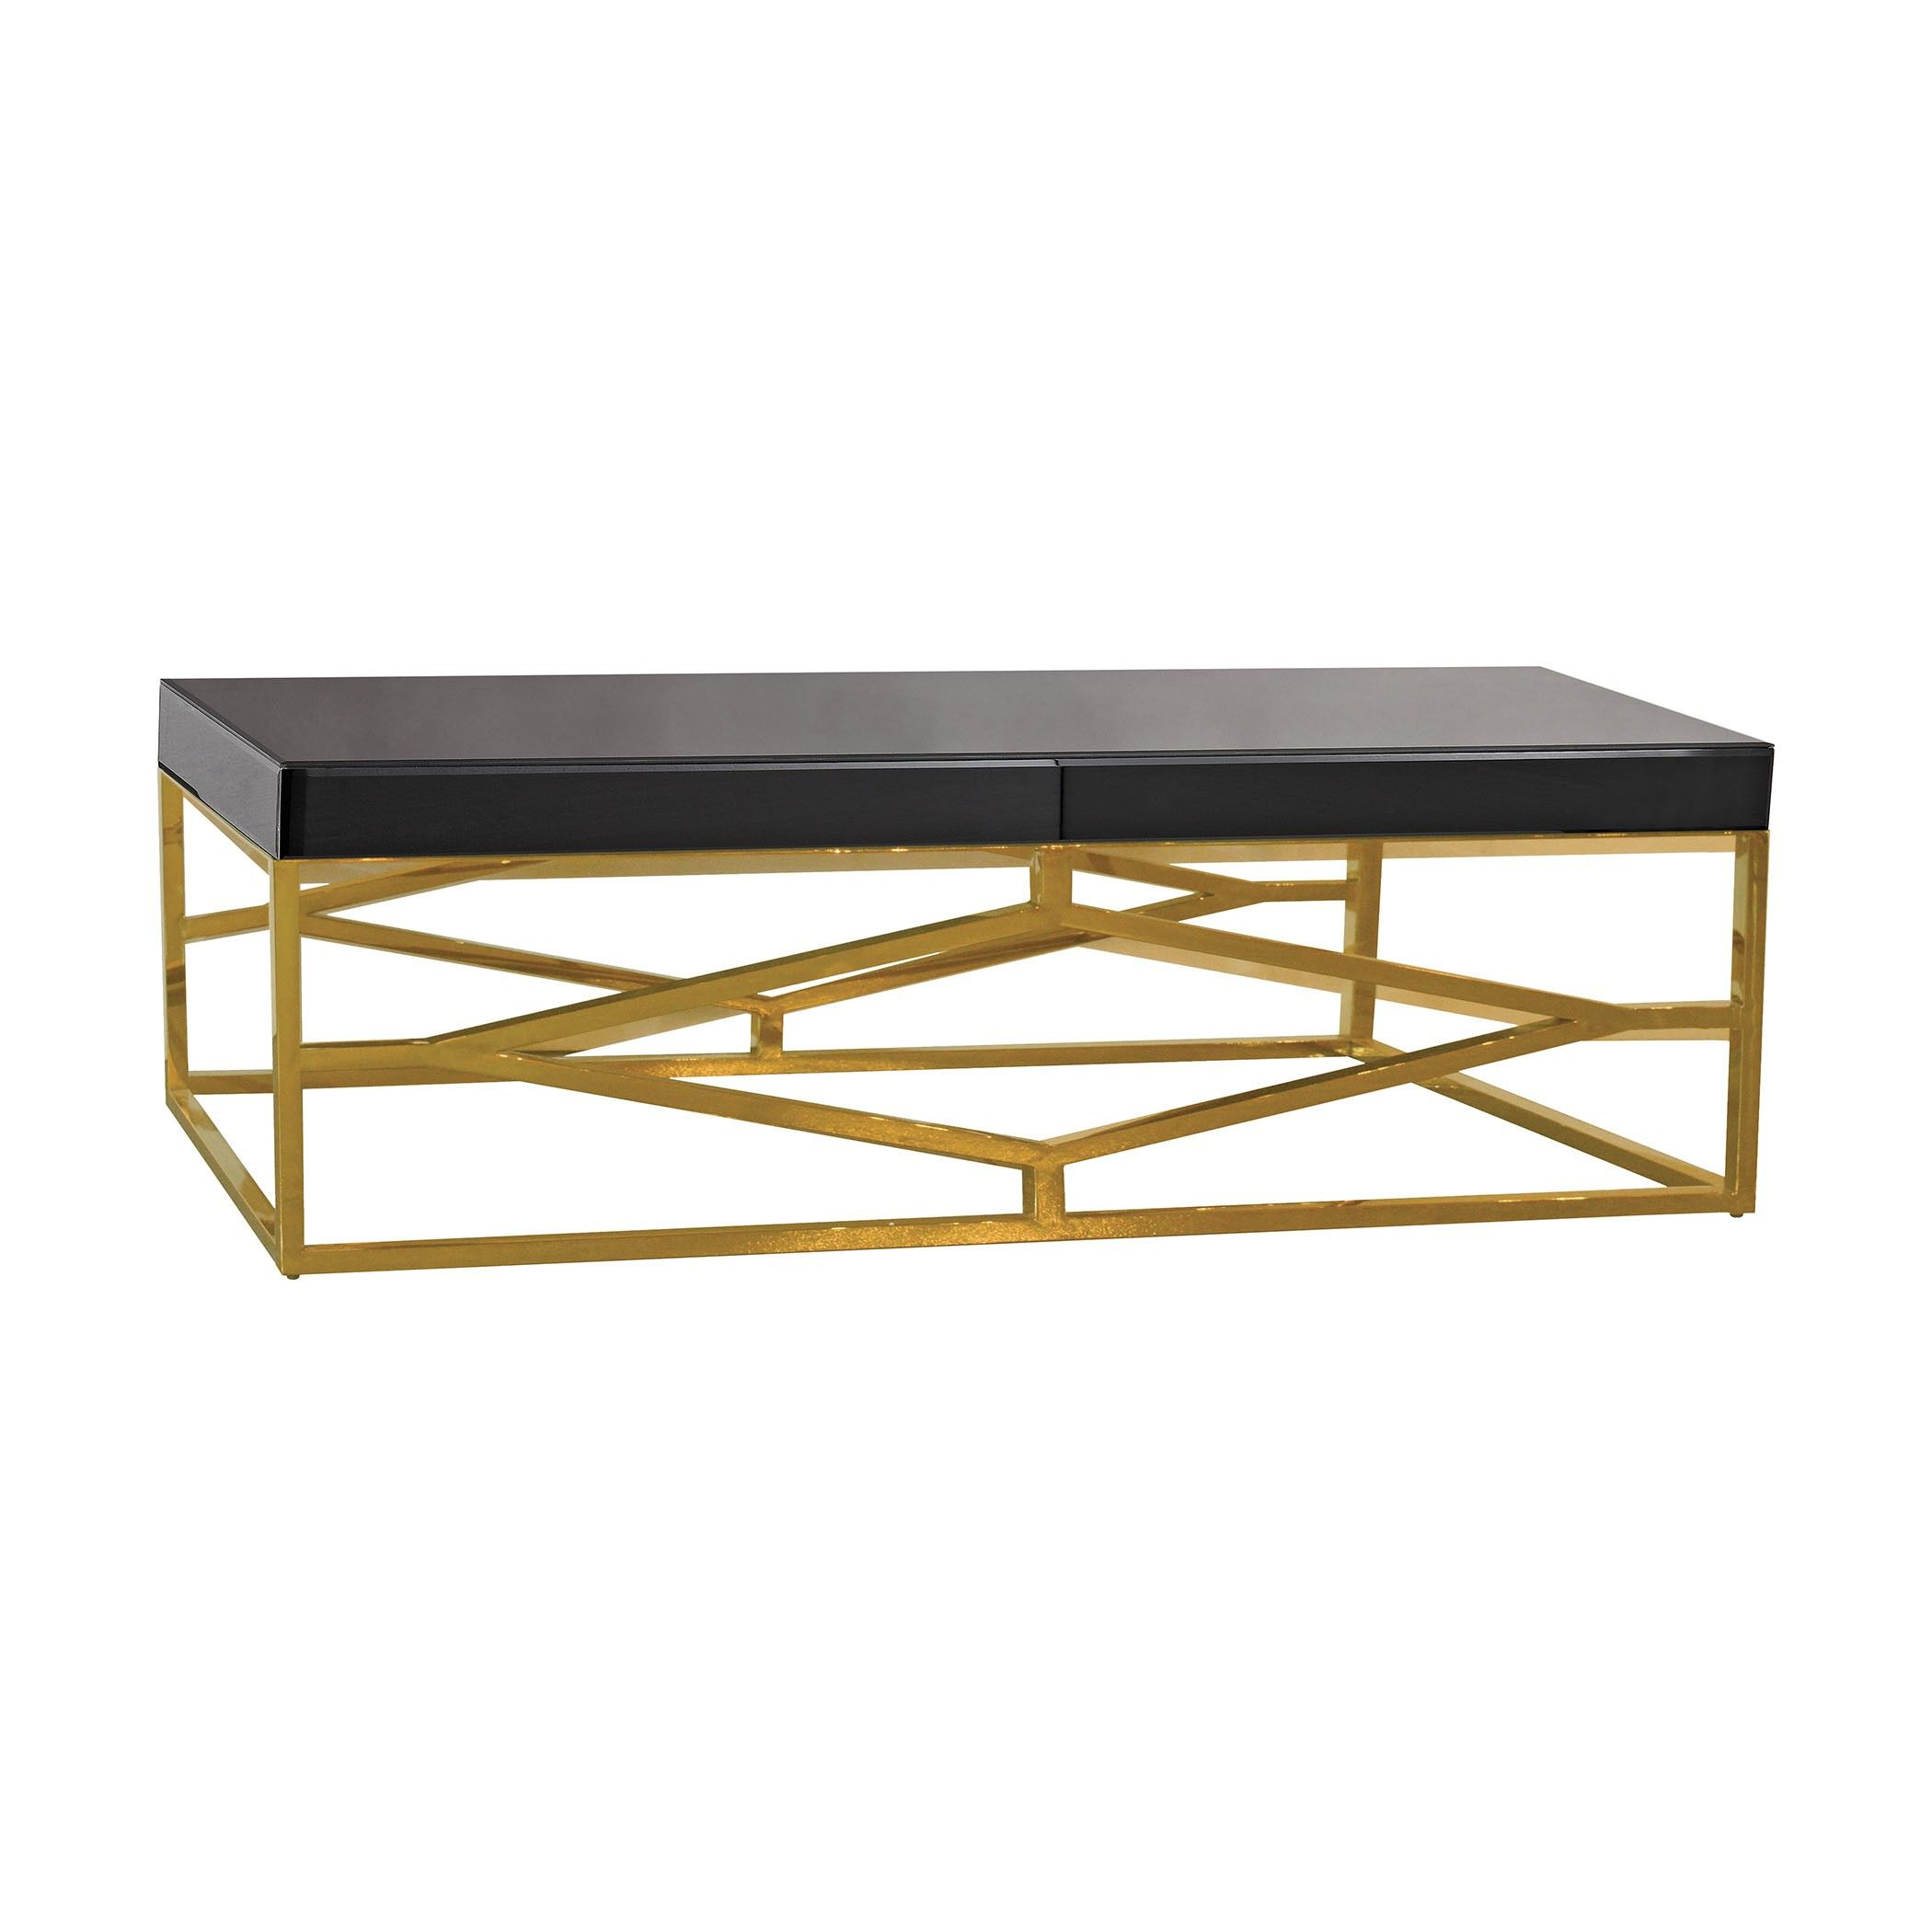 Darcine Coffee Table Black And Gold Gold Coffee Table Coffee Table Black Coffee Tables